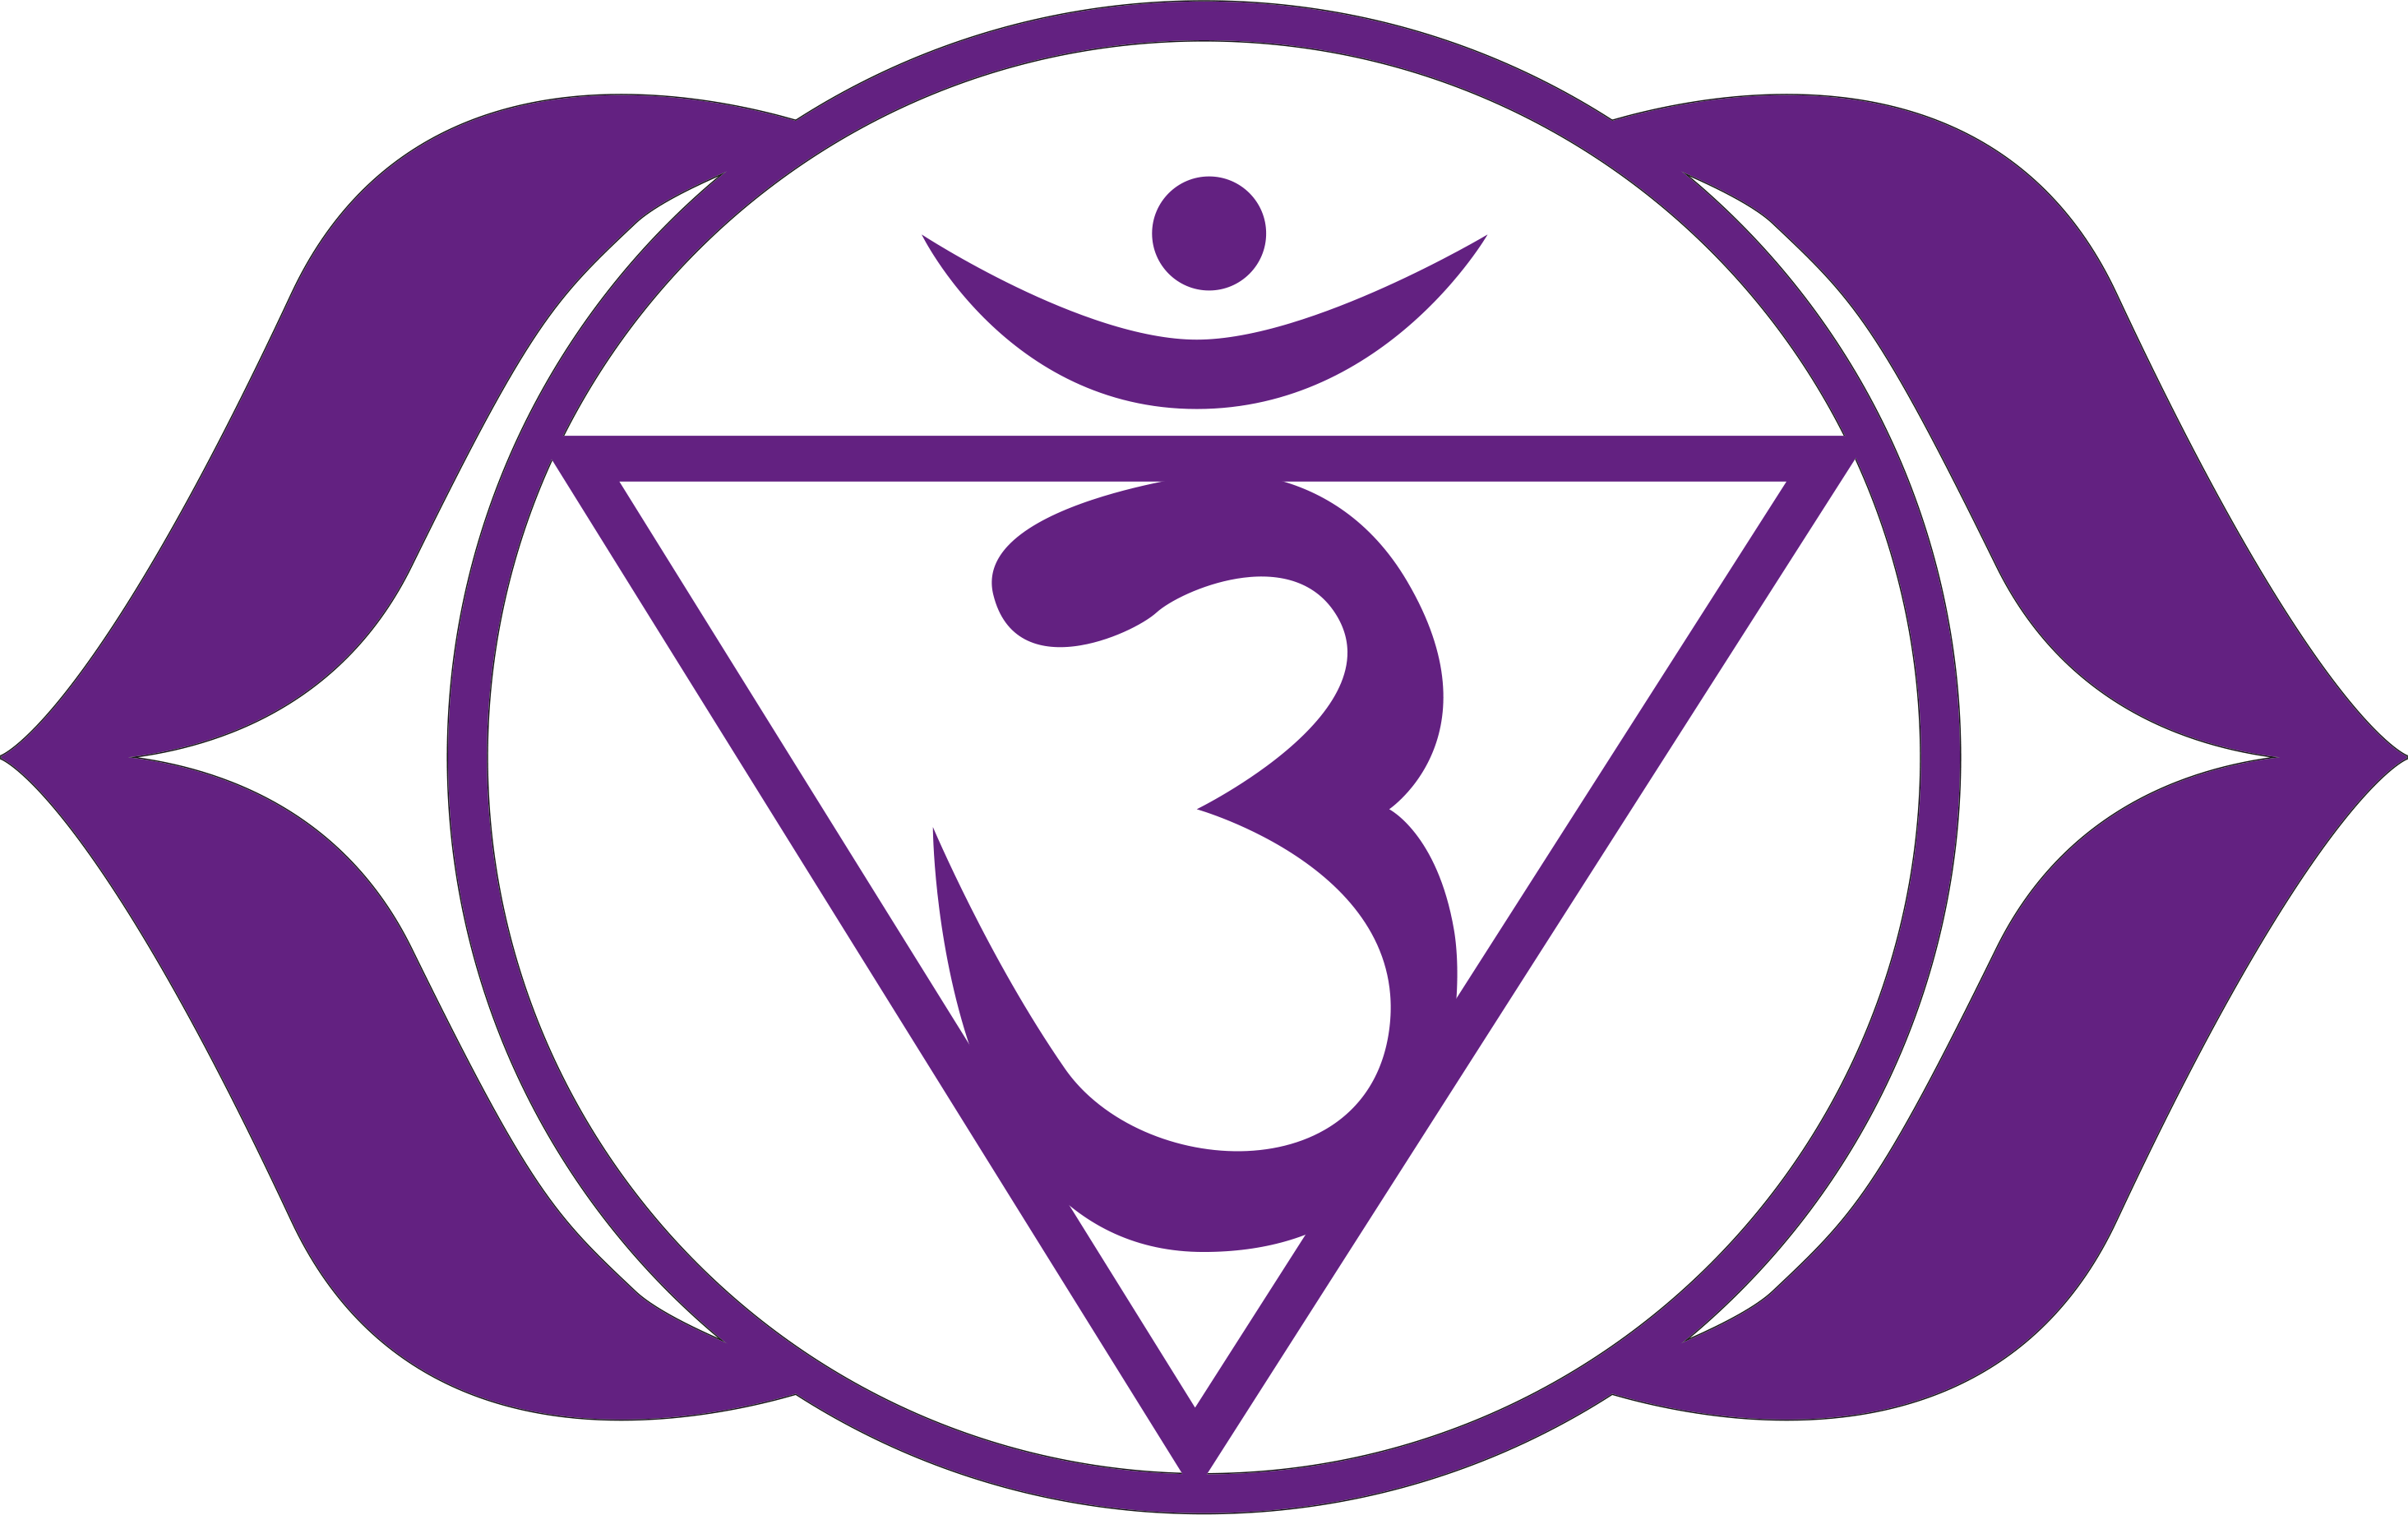 Third Eye Chakra - Intuition & Expanded Awareness